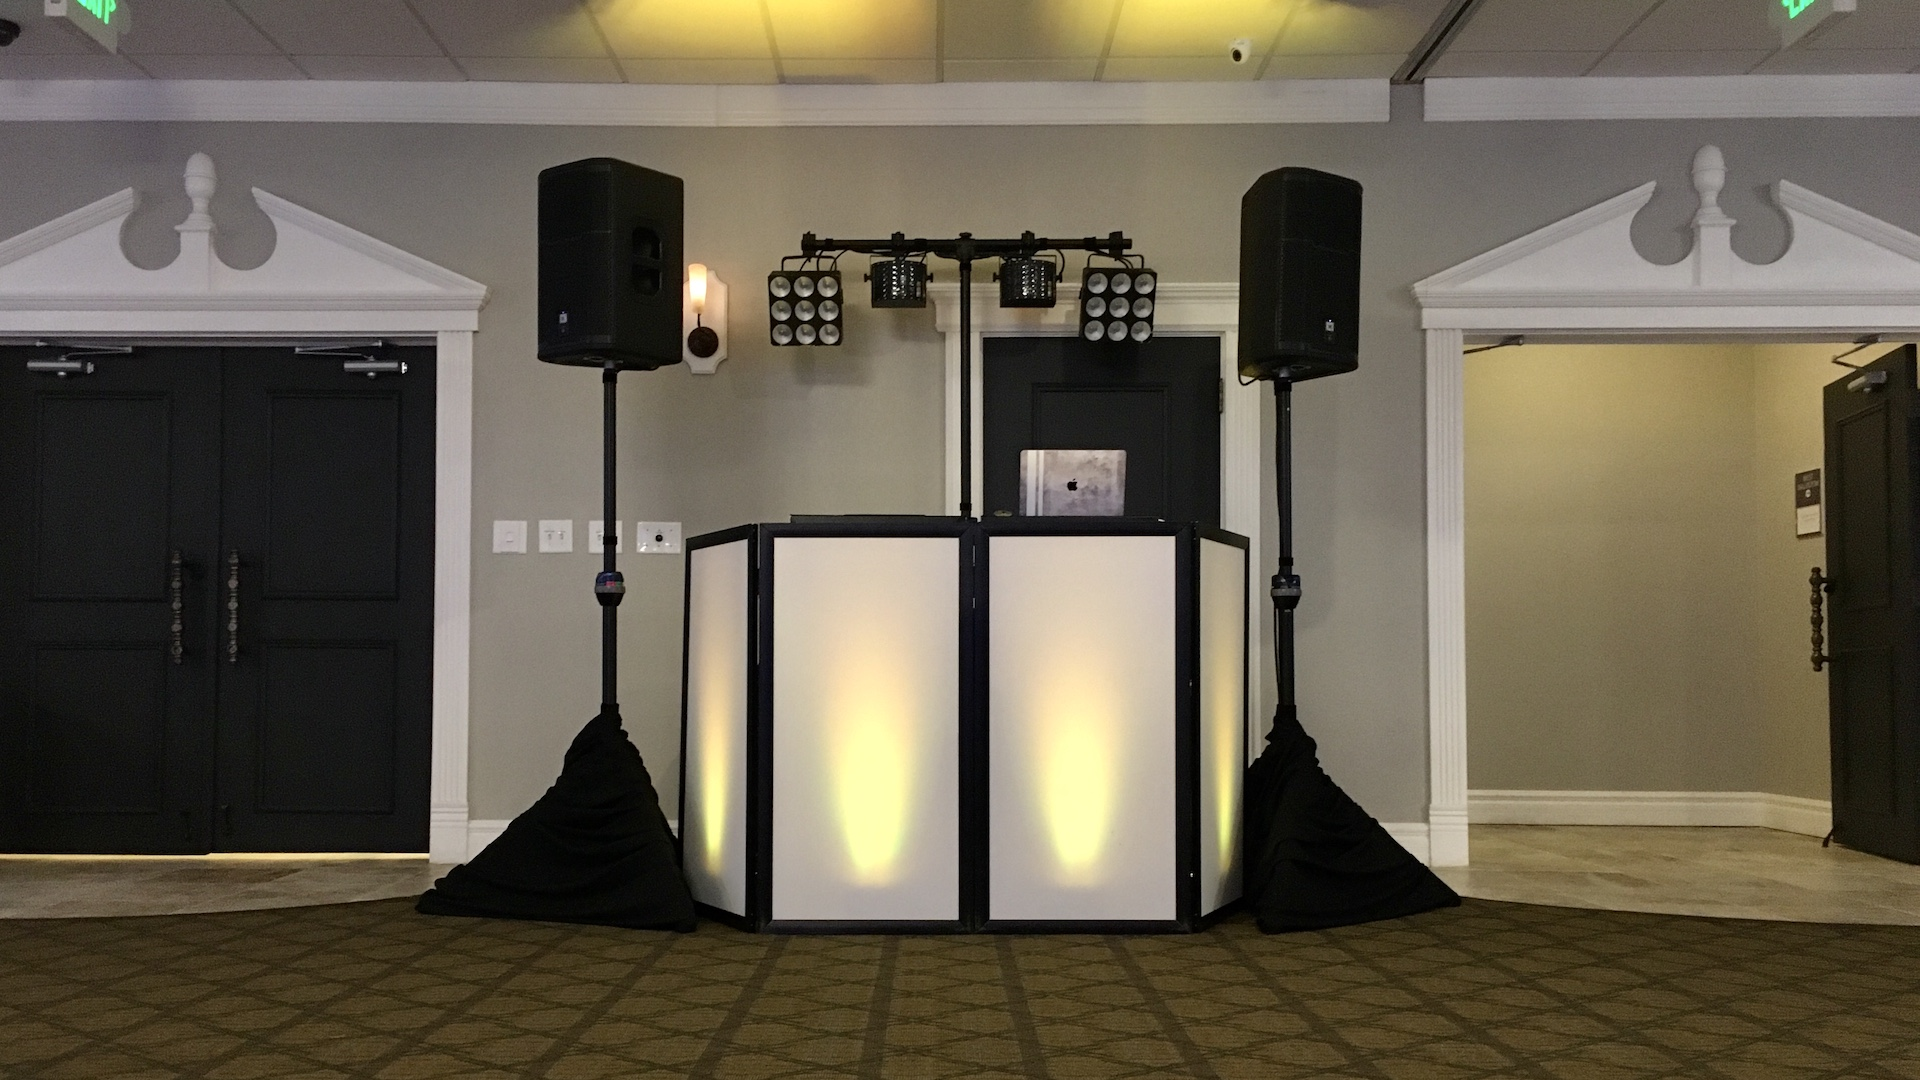 All-Star Music DJ setup